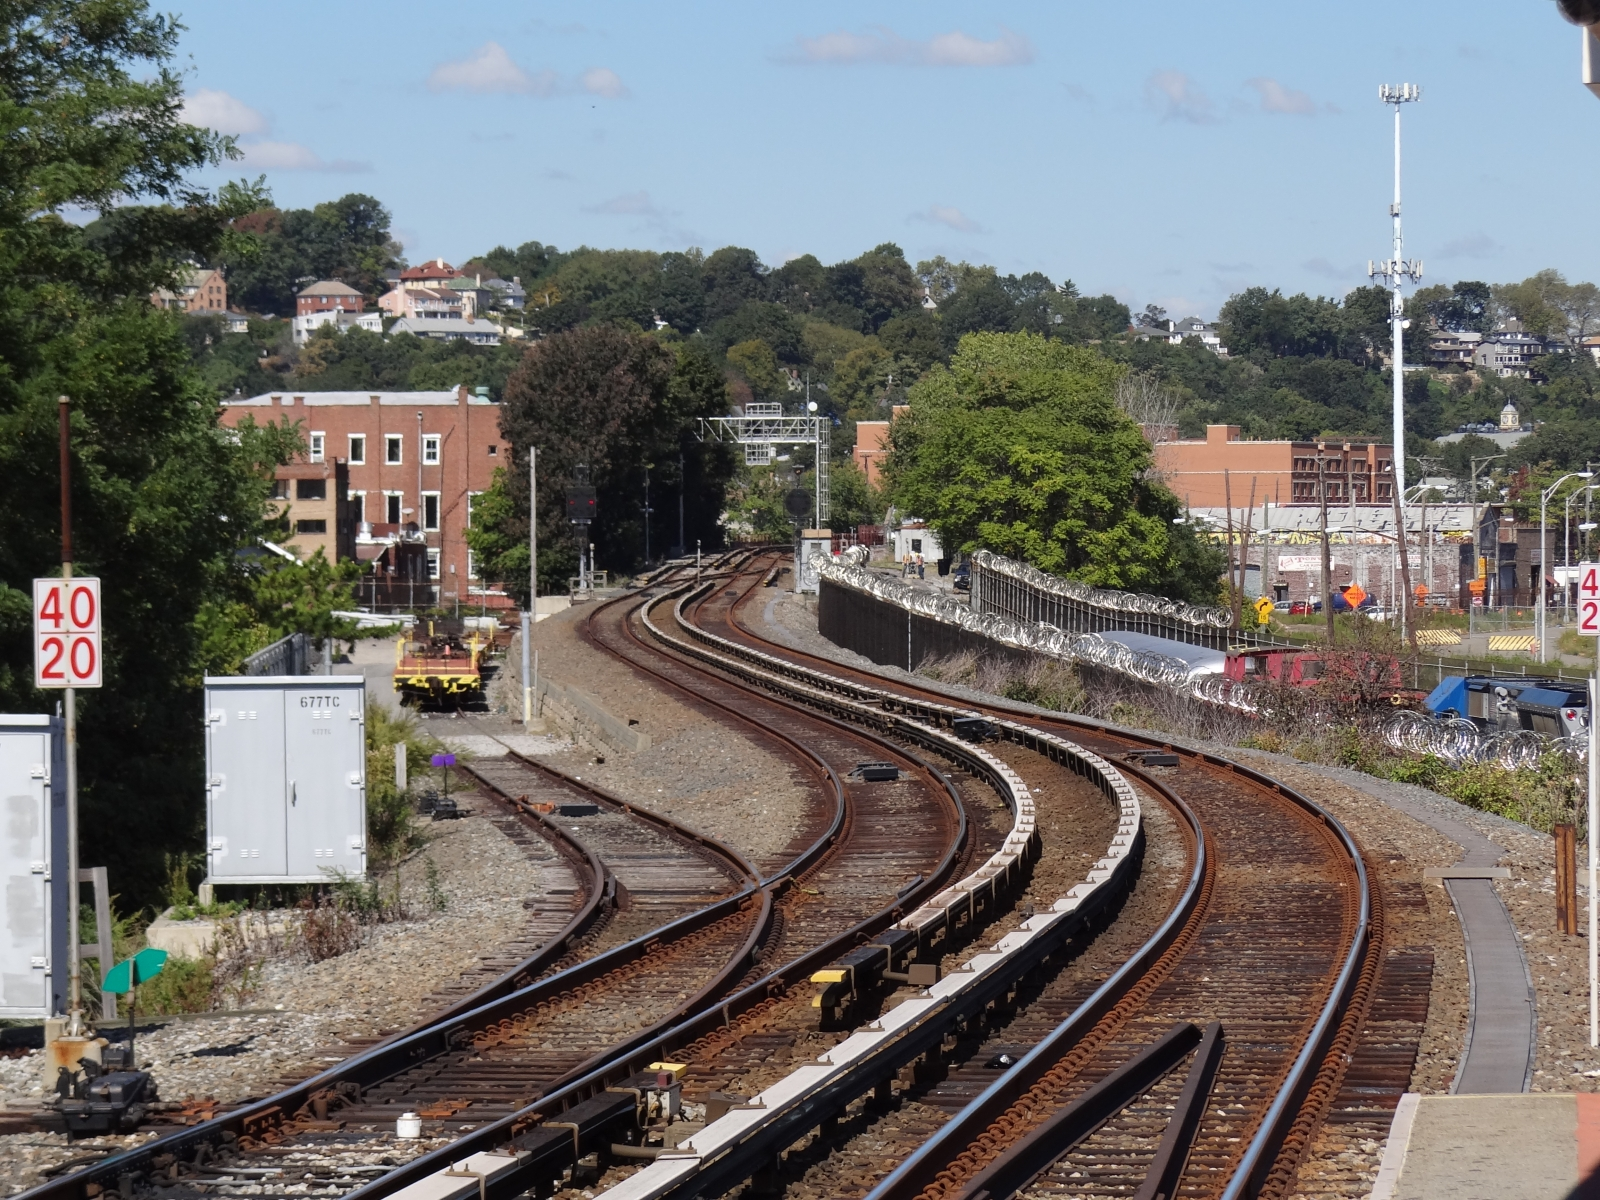 Staten Island Railway: Like The NYC Subway, But Different